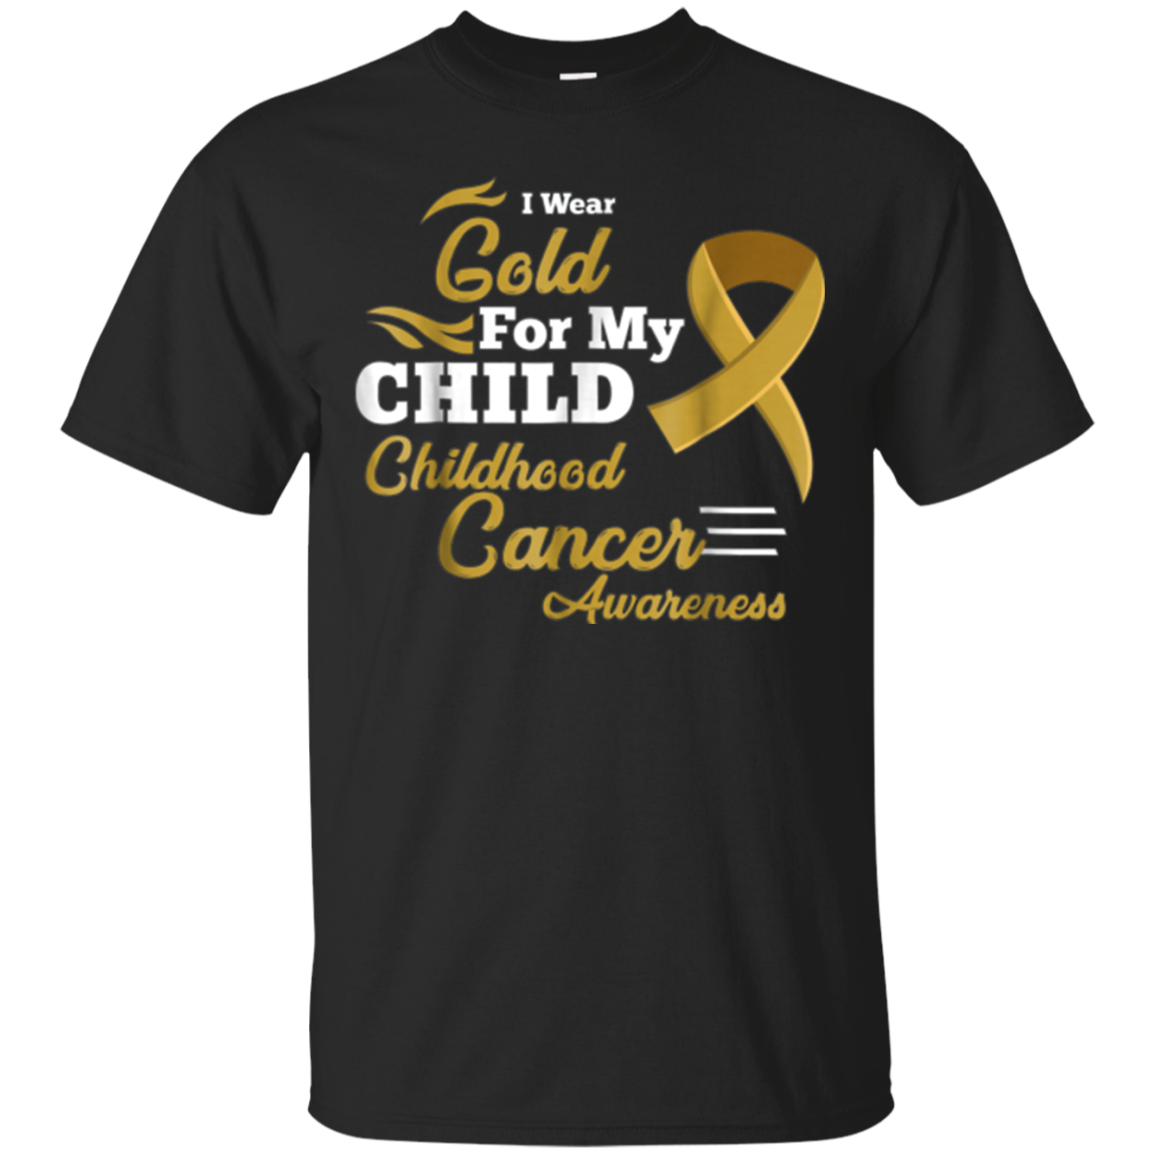 I Wear Gold for My Child Childhood Cancer Awareness Shirt